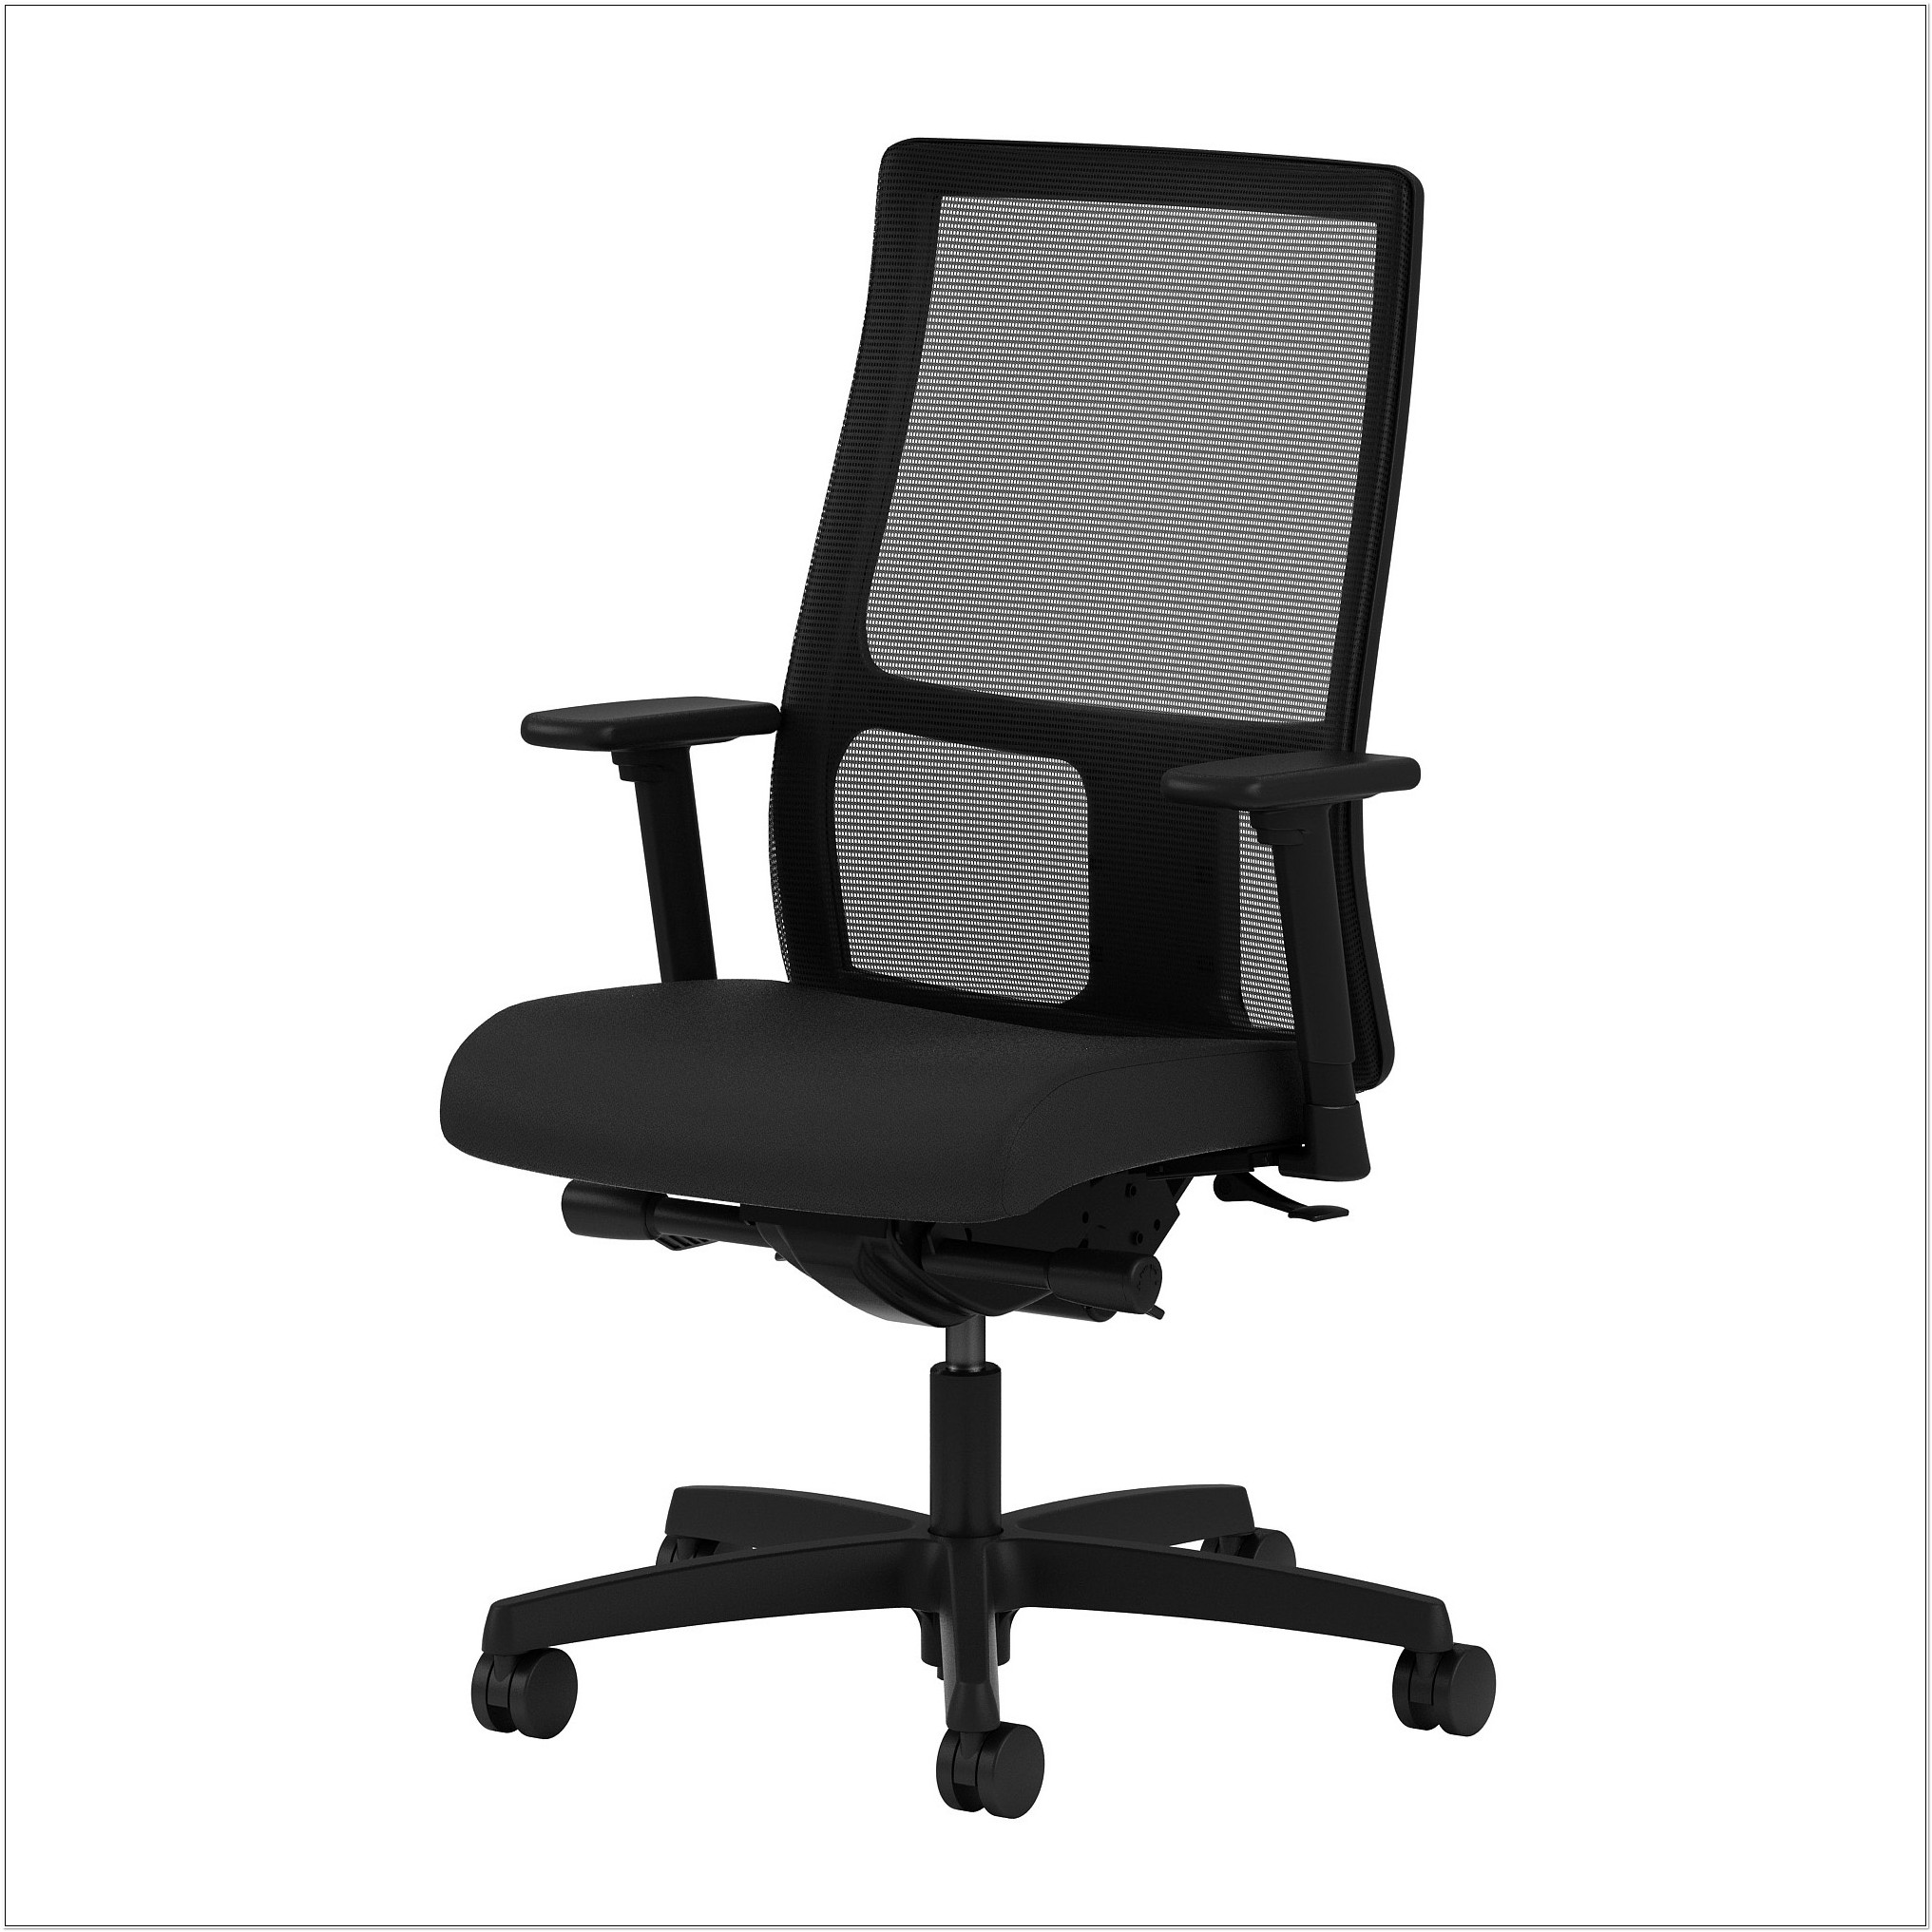 Hon Desk Chair Manual